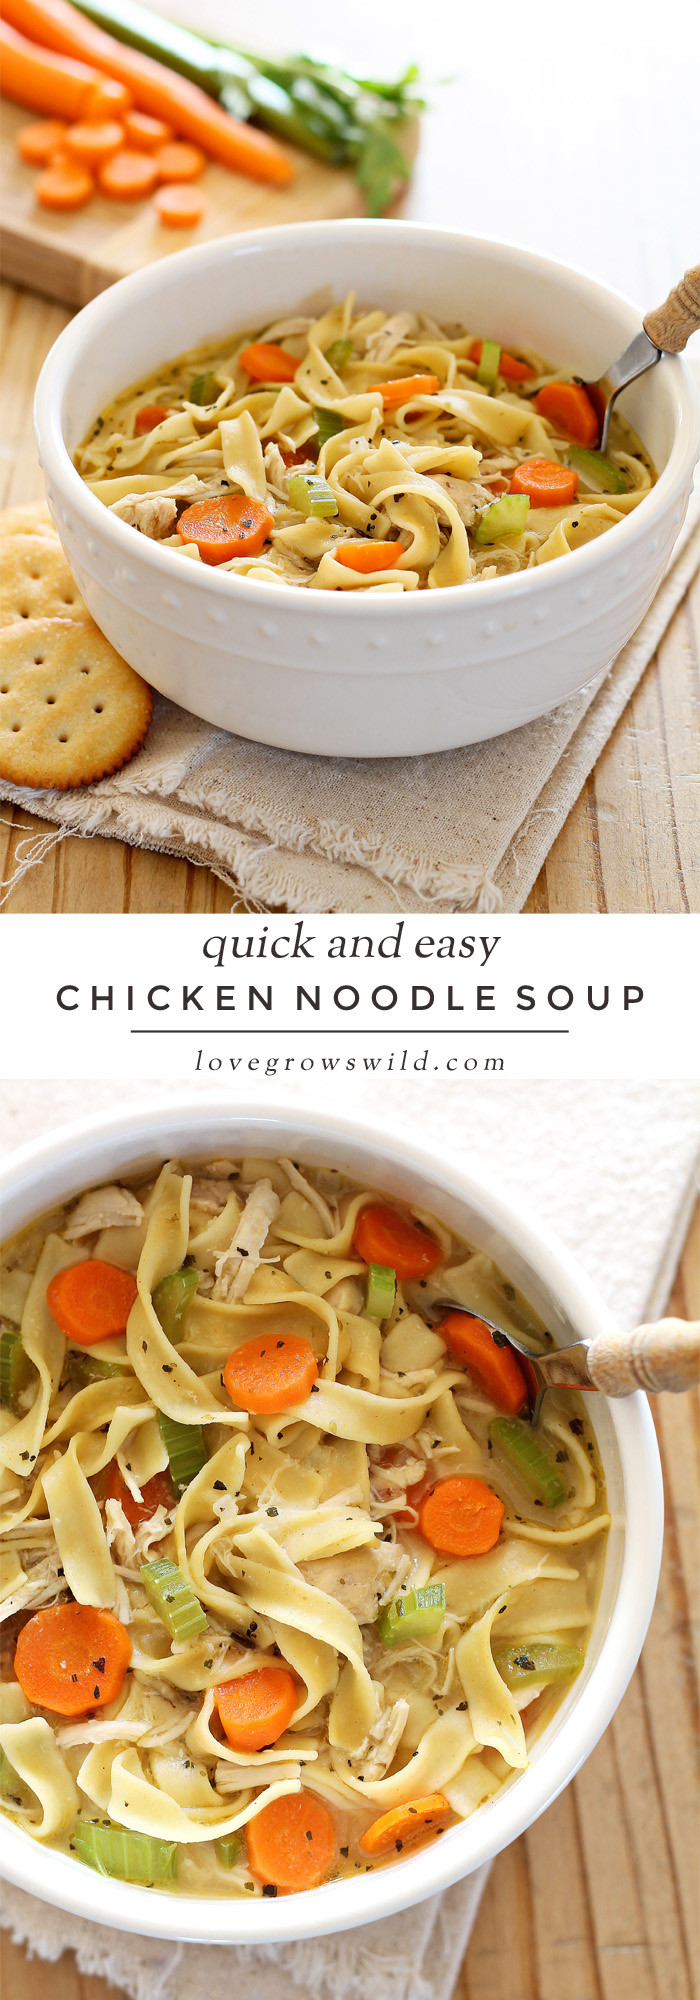 Quick Homemade Chicken Noodle Soup  Quick and Easy Chicken Noodle Soup Love Grows Wild